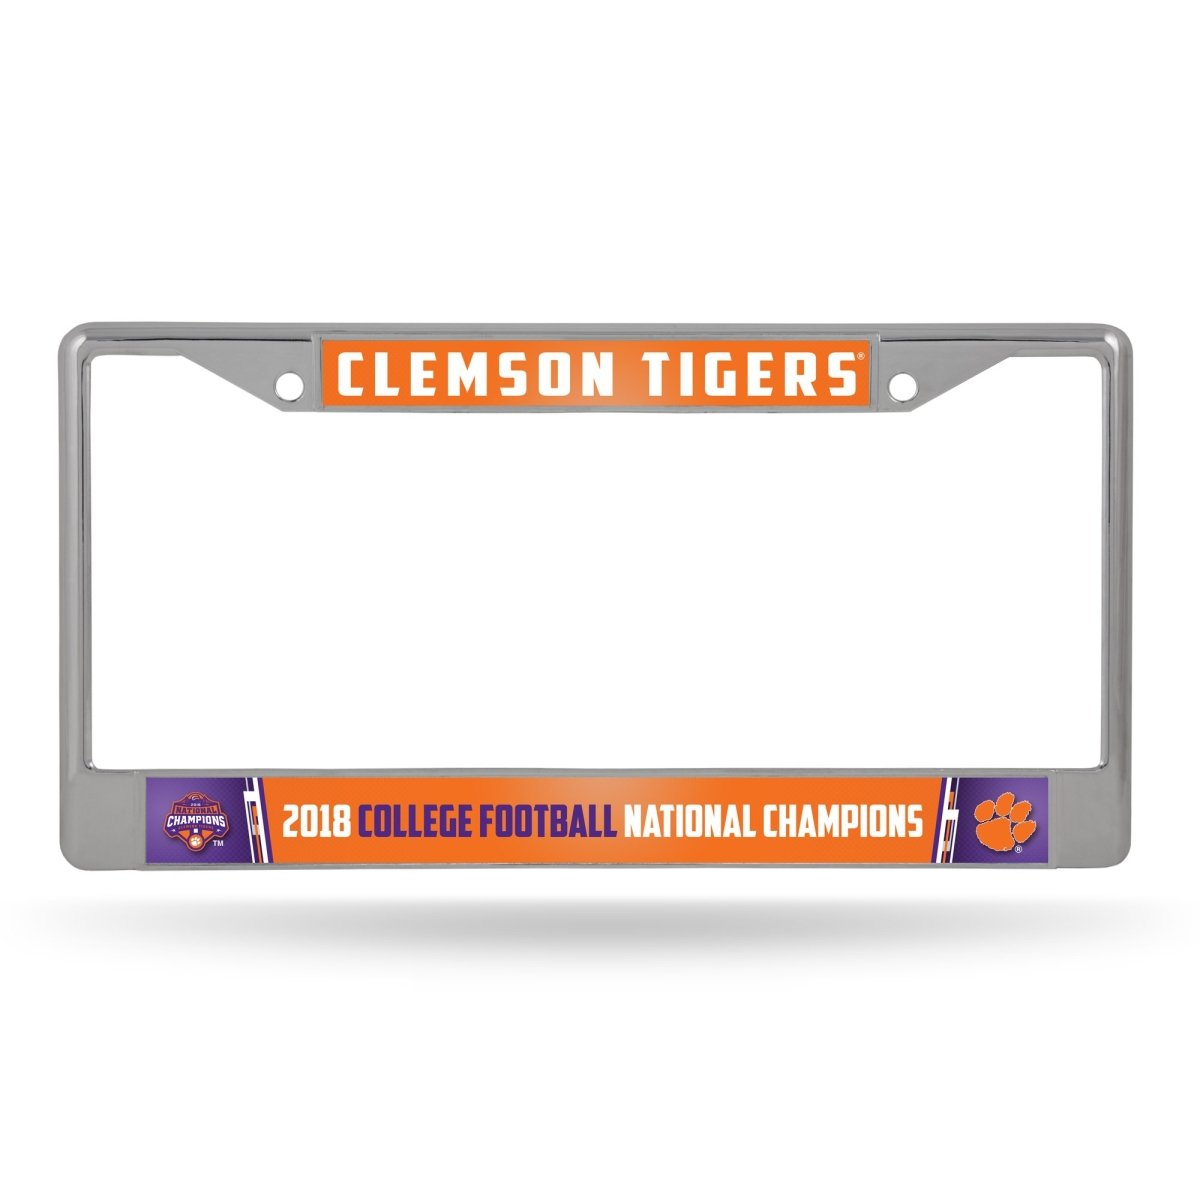 Clemson 2019 College Football Champions Chrome Frame - Mr. Knickerbocker